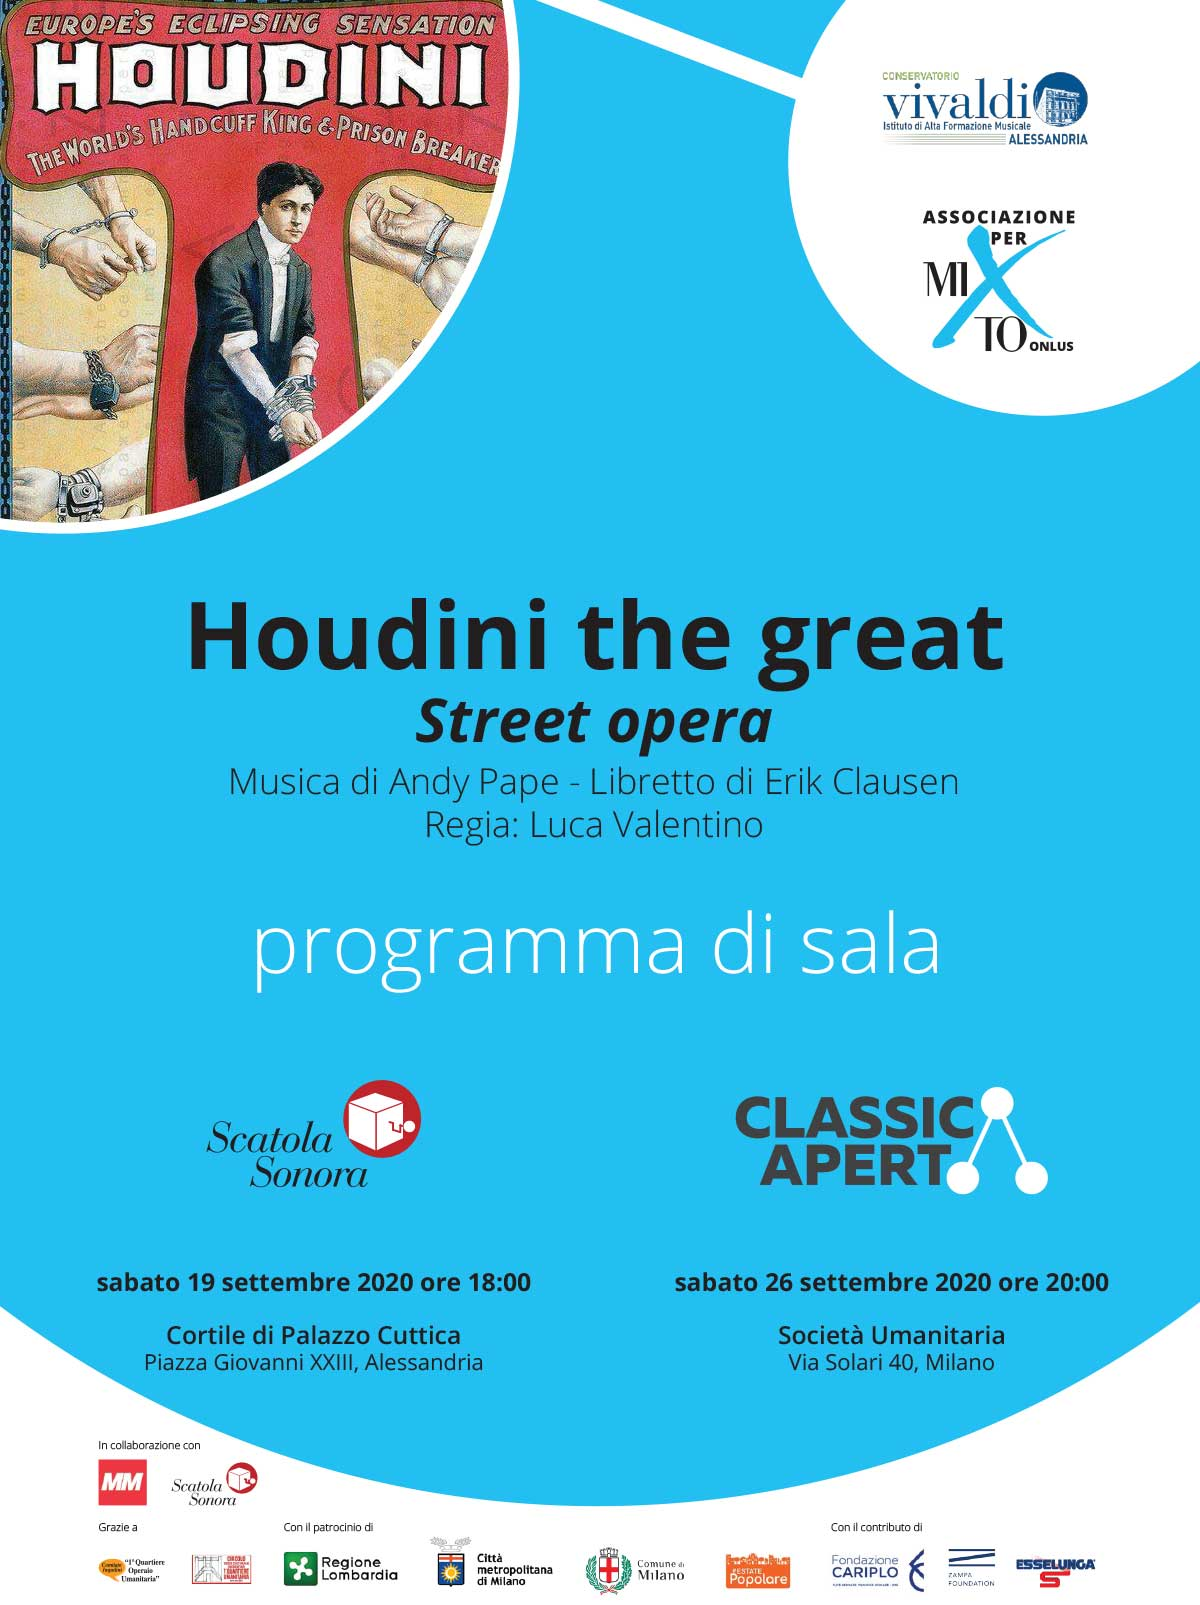 ClassicAperta: Houdini the great - programma di Sala